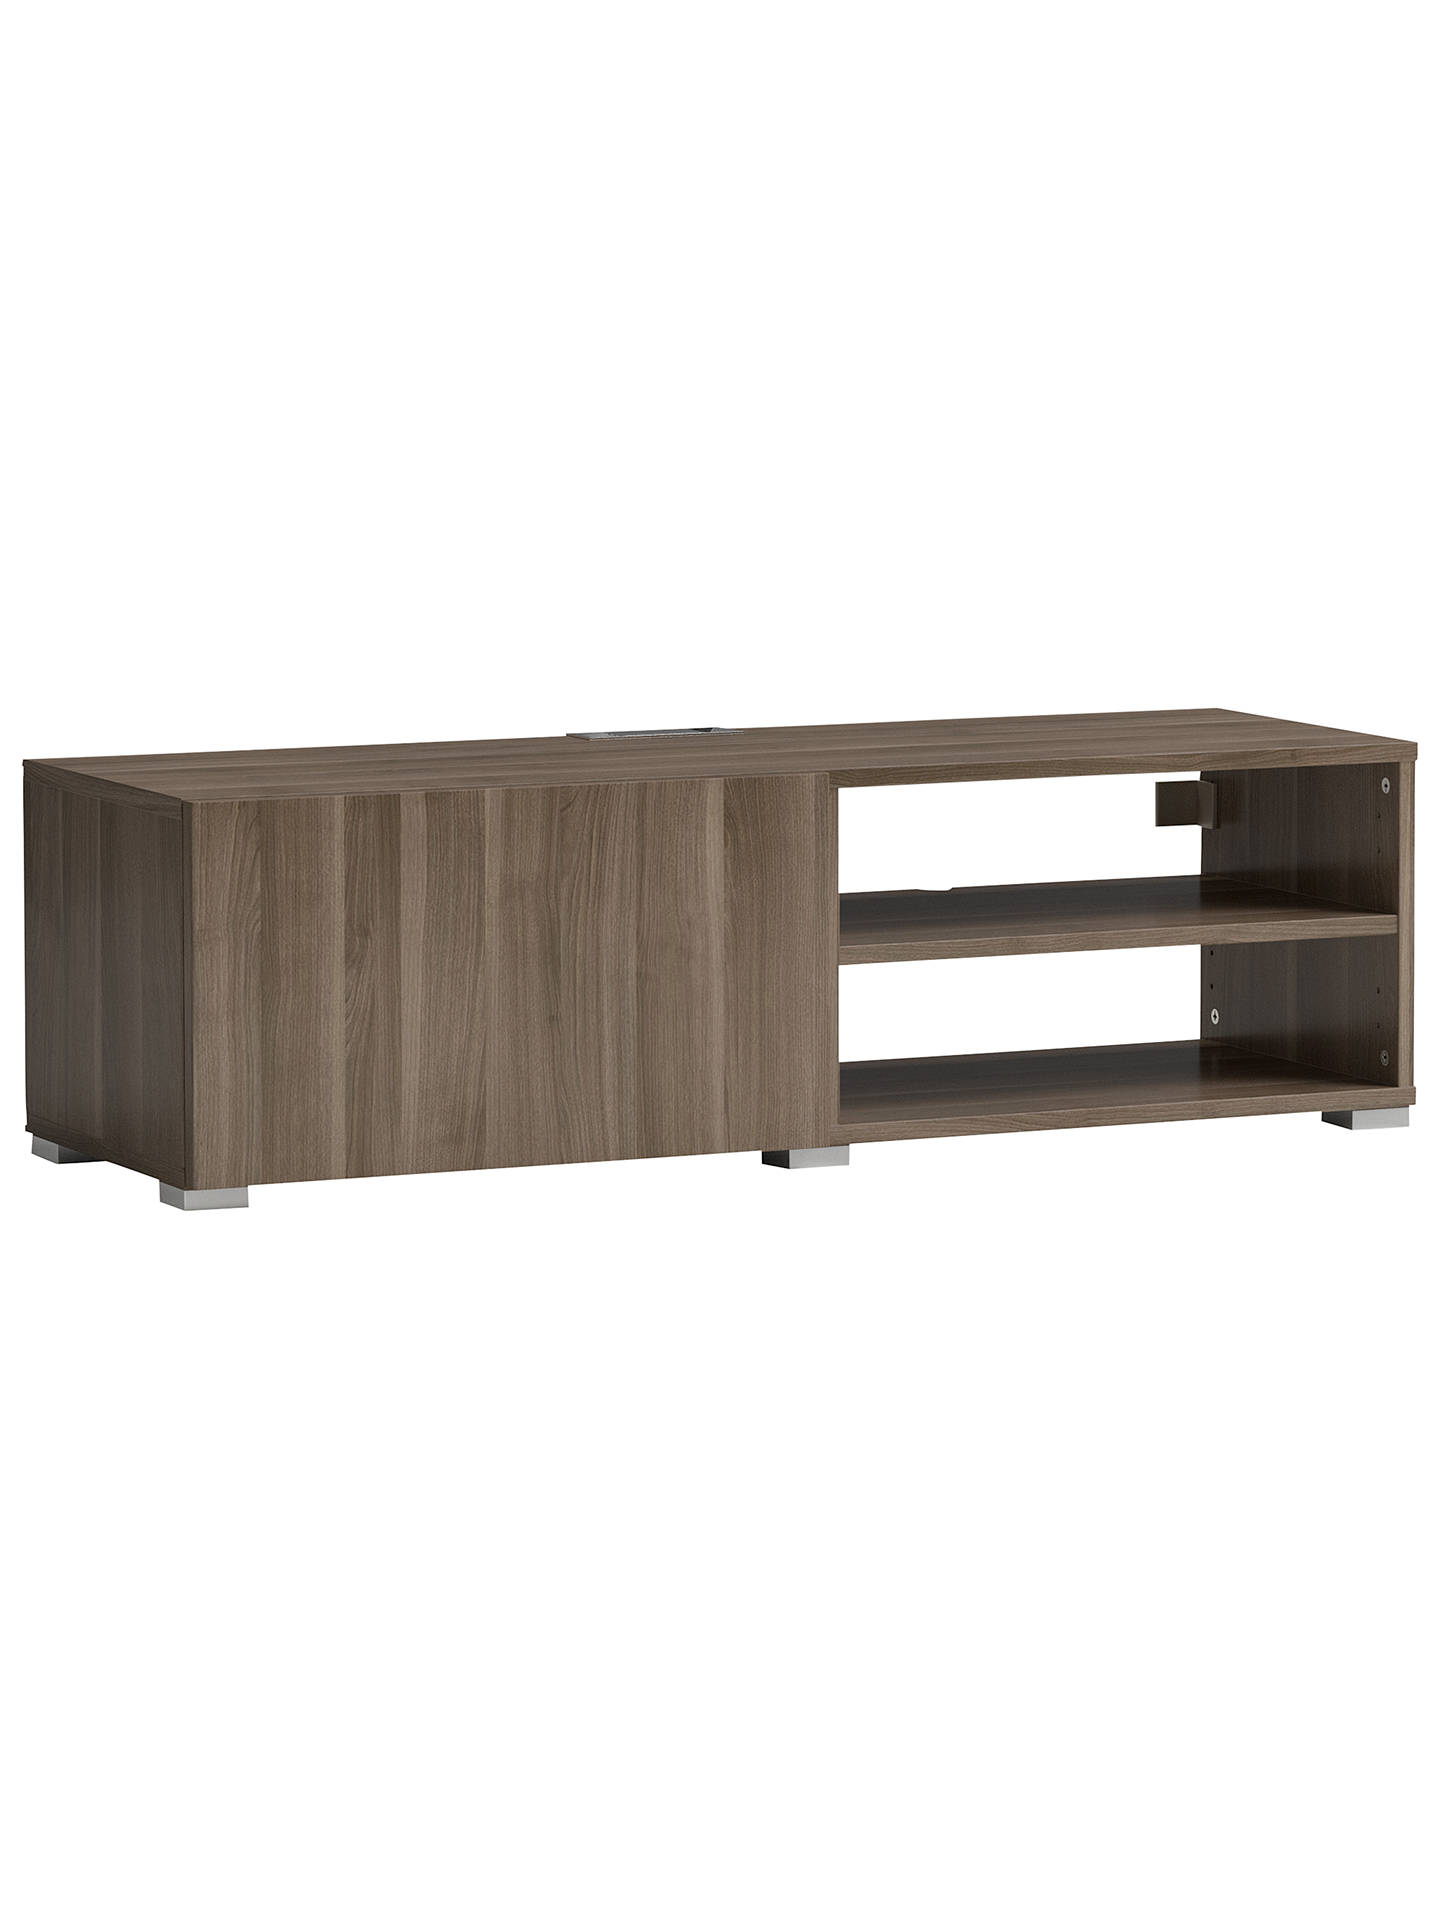 BuyHouse by John Lewis Mix it Media Unit - Ash frame / Grey Ash door Online at johnlewis.com